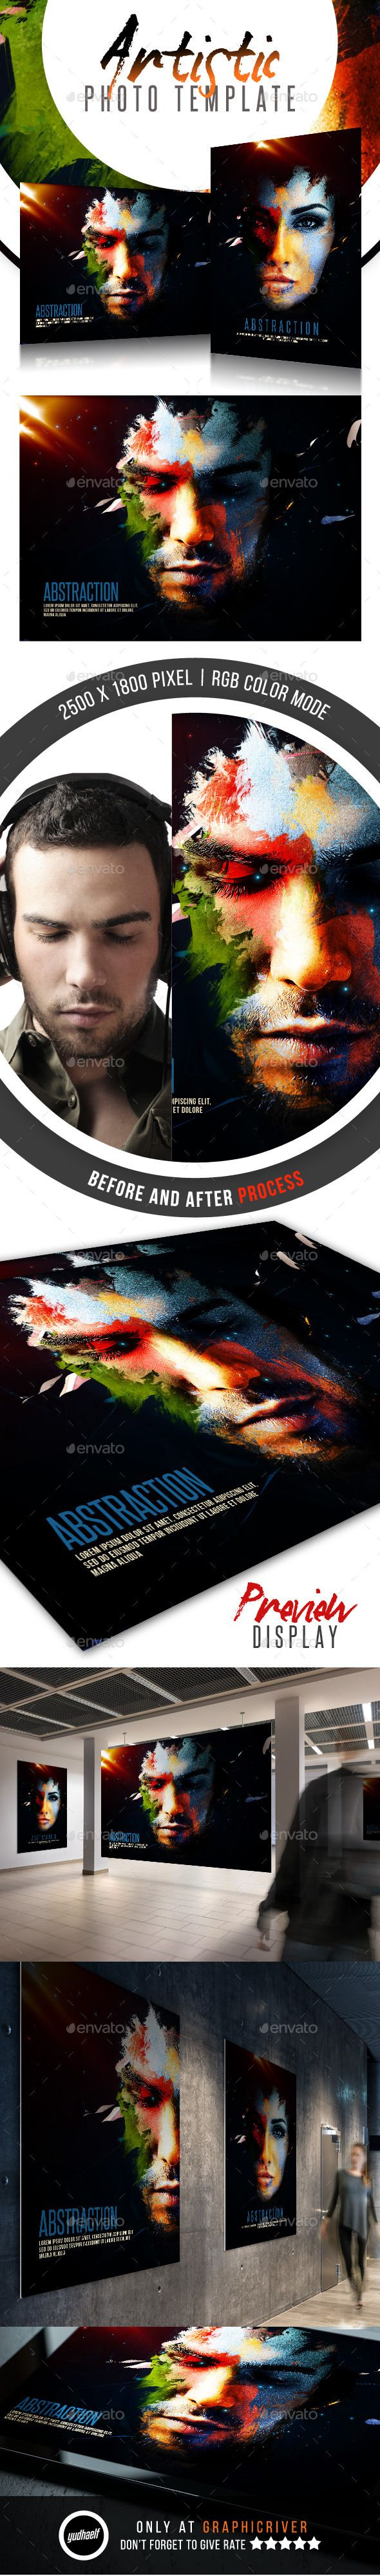 Abstraction - Artistic Photo Template PSD #design Download: http://graphicriver.net/item/abstraction-artistic-photo-template/11788929?ref=ksioks